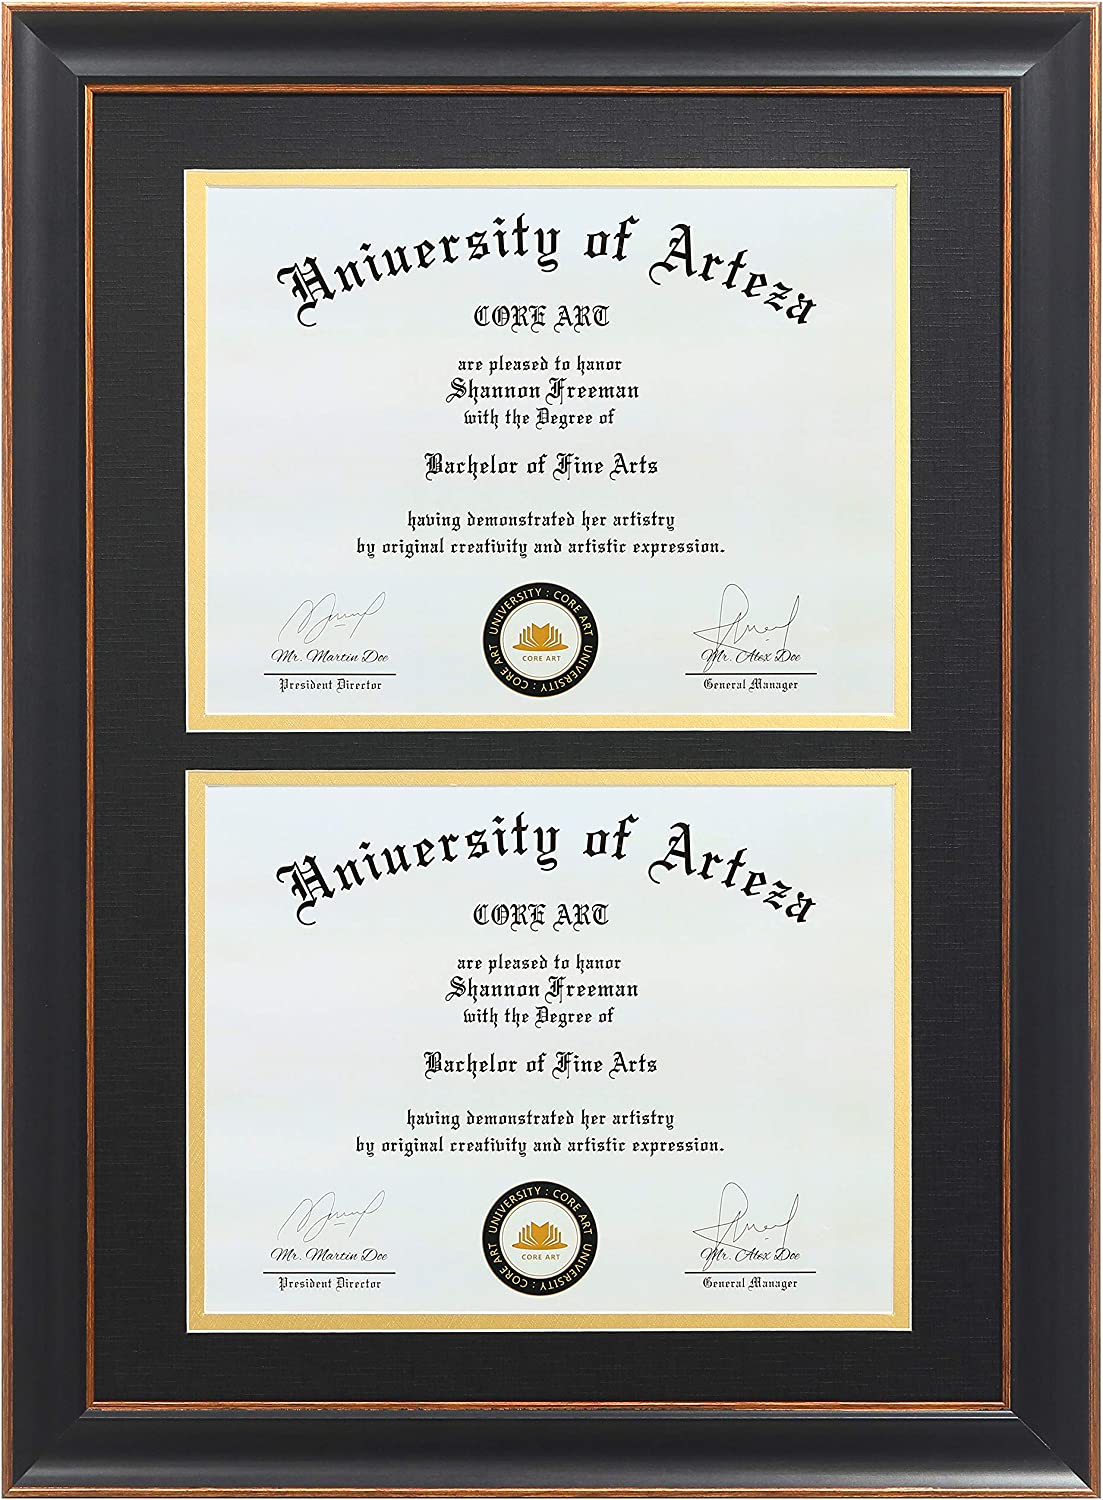 CORE ART Double Diploma Frames 14x20 Fits Miami Mall 8.5x11 OFFicial mail order Certif Inch Two